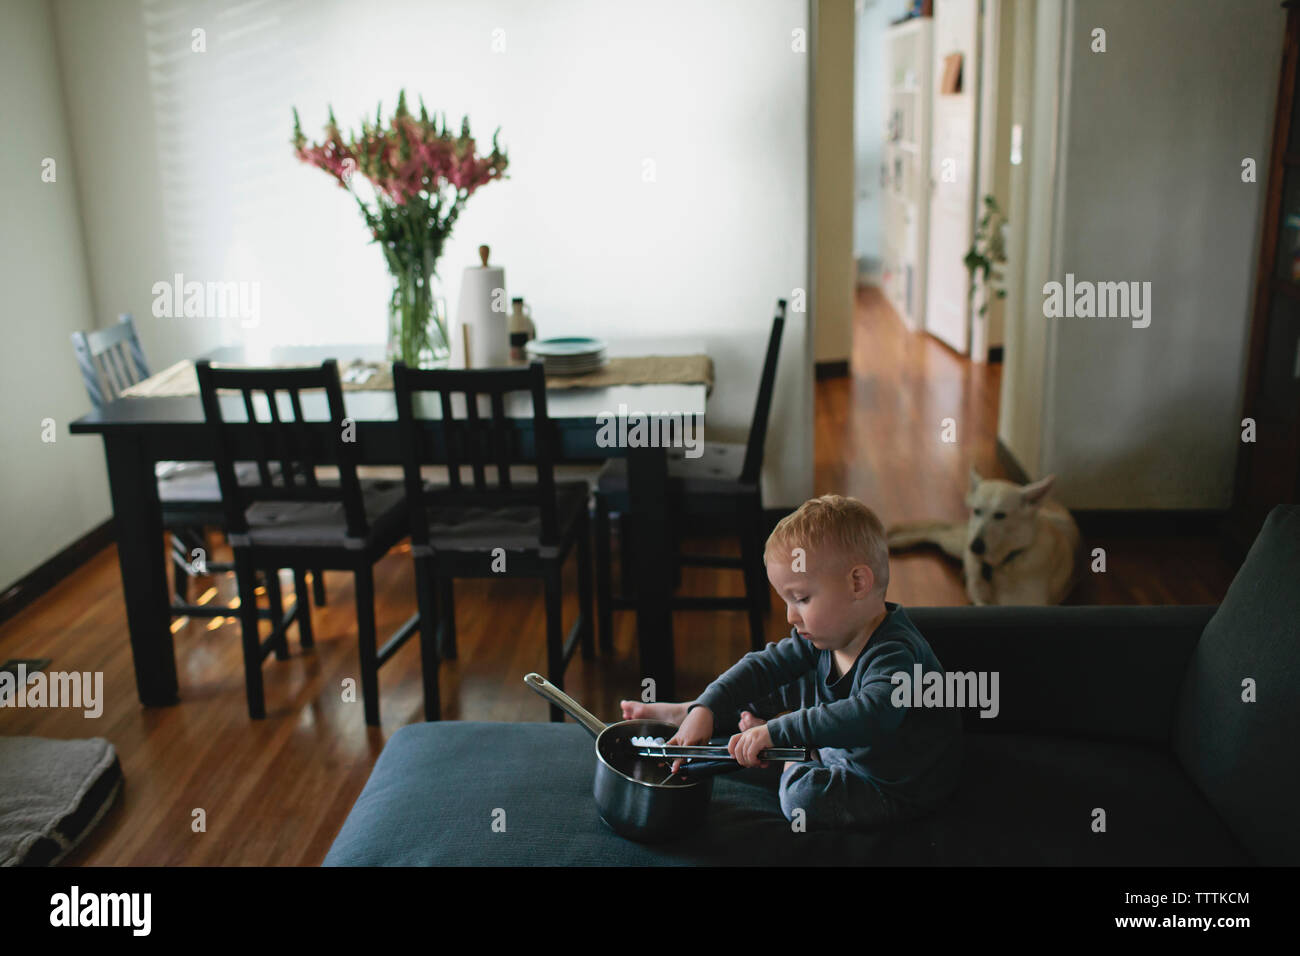 Baby boy playing with kitchen utensils while sitting on sofa at home - Stock Image